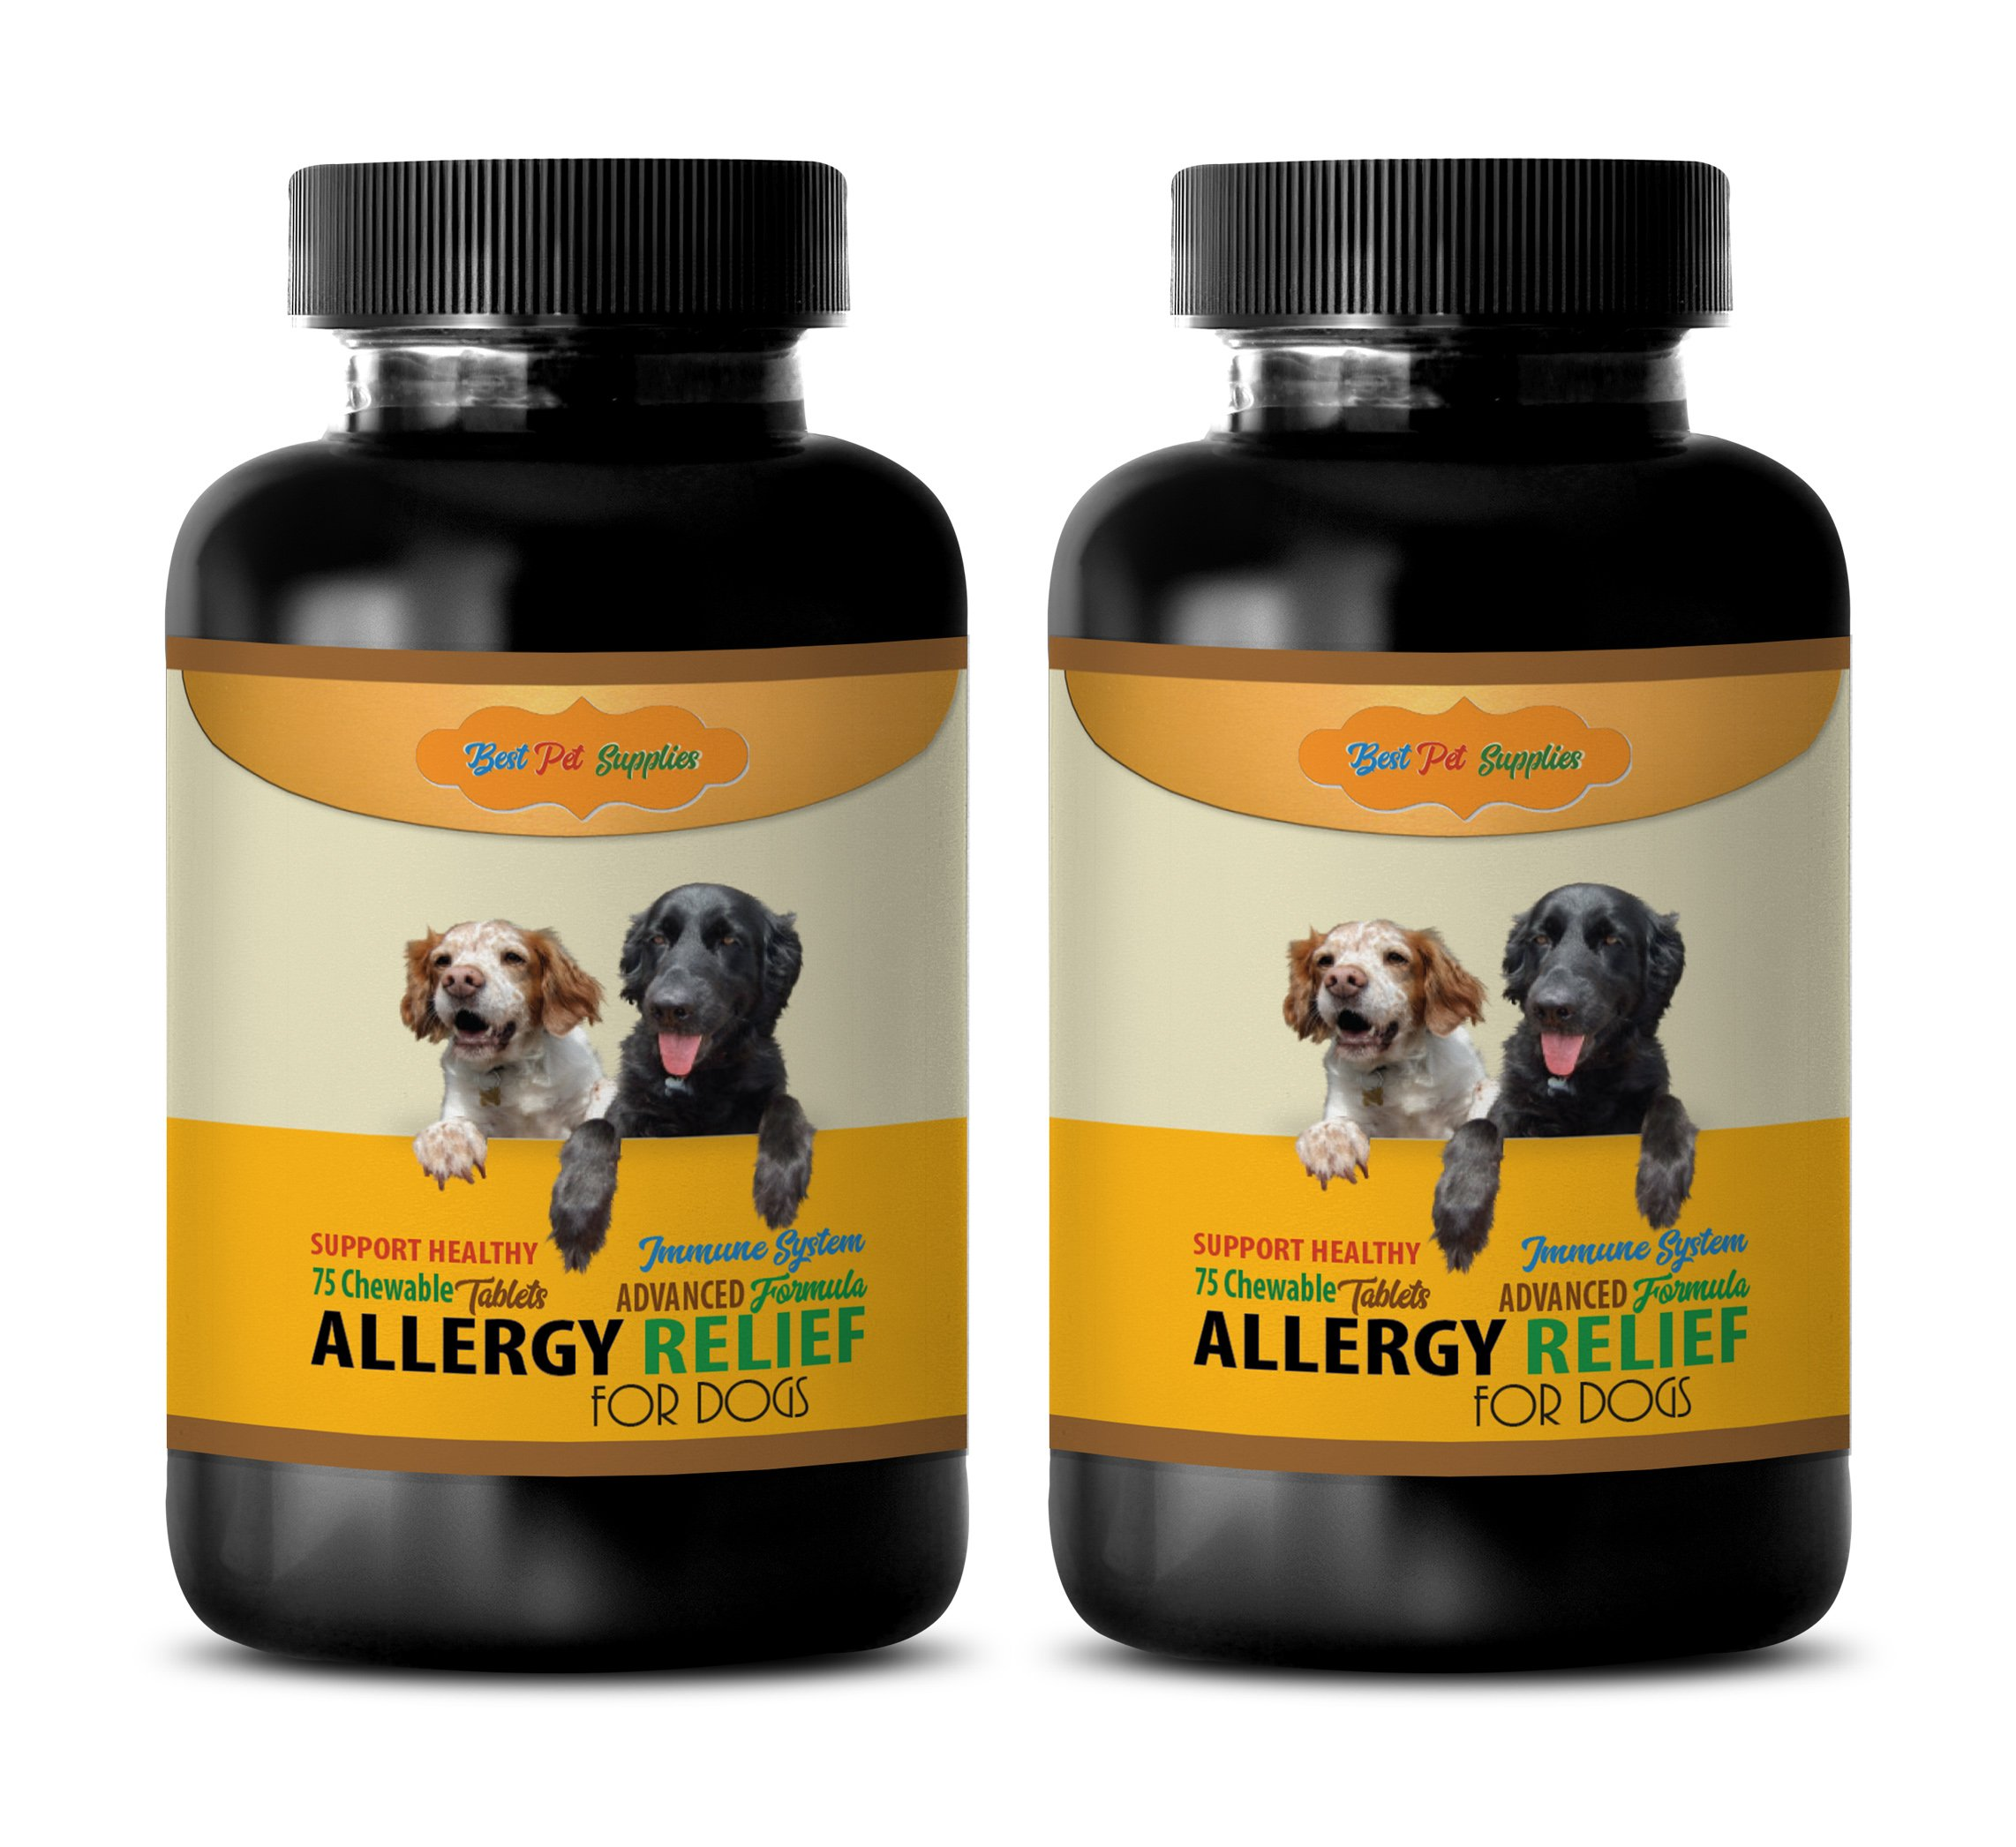 Dog Anti Itch Pills - Best Dog Allergy Relief - GET RID of ITCHING - Immune Support - Chews - Nettle for Dogs - 150 Treats (2 Bottles) by BEST PET SUPPLIES LLC